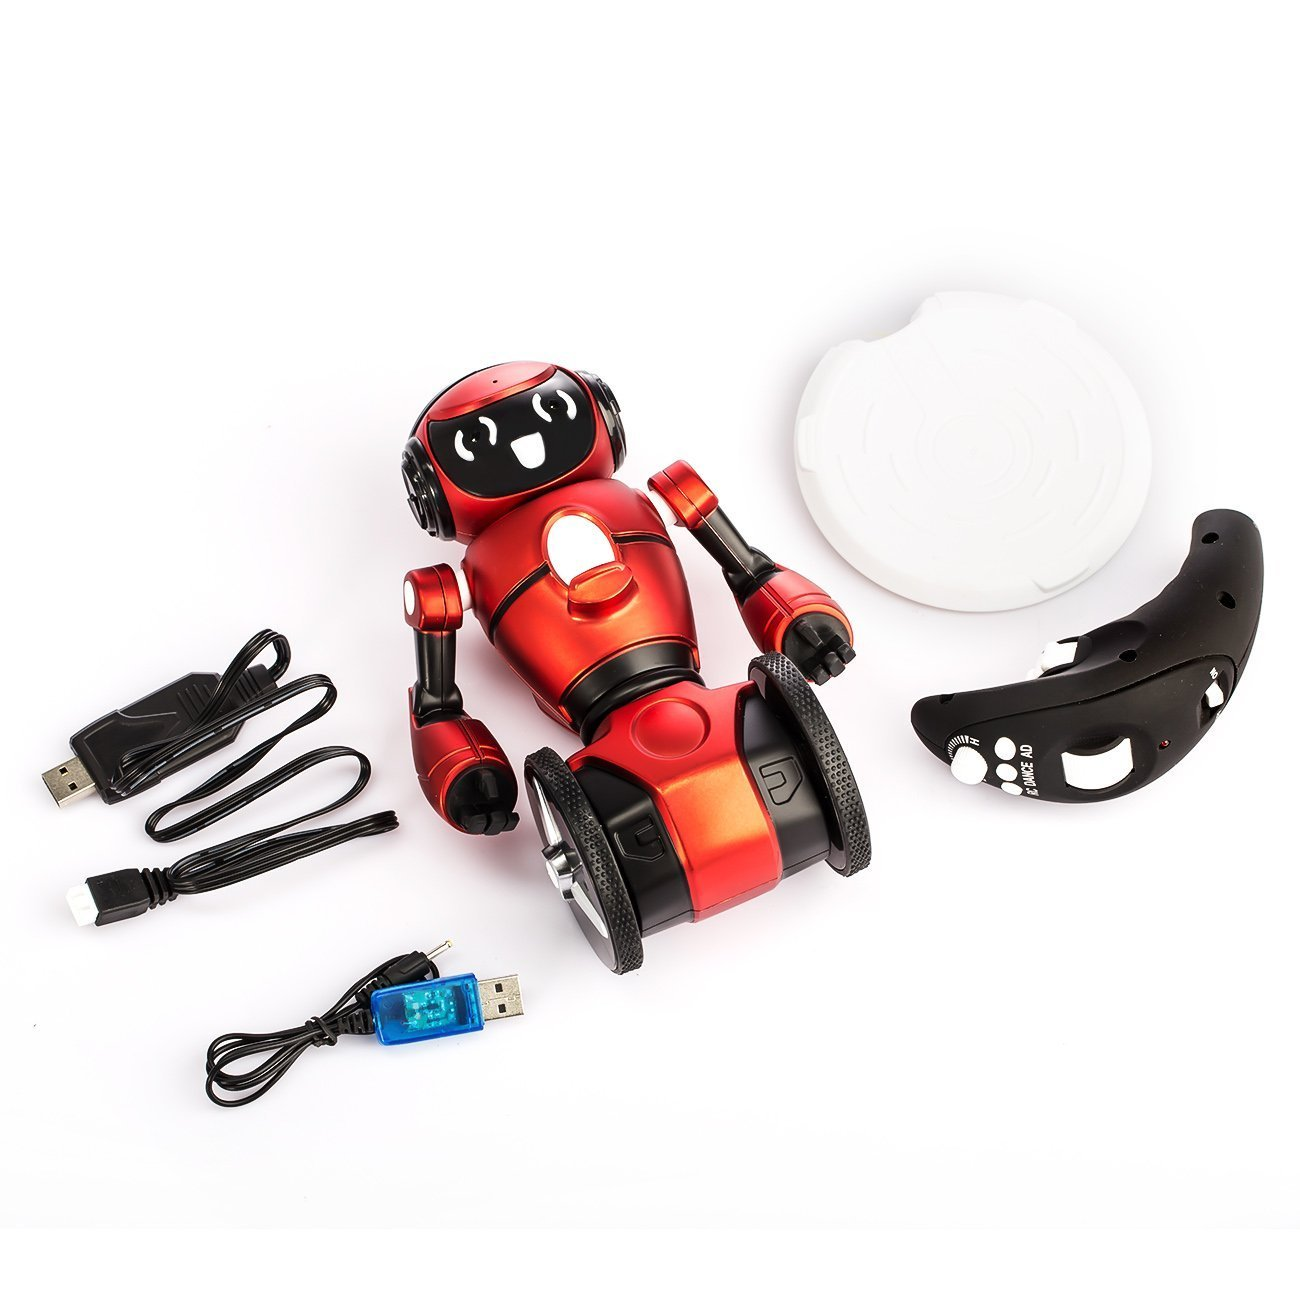 WLToys Intelligent Two Wheels Balance RC Robot Toy with Dance Music Avoidance Human-computer Interaction Mode for Children Kids as a Gift *Colors May Vary. by WLtoys (Image #4)